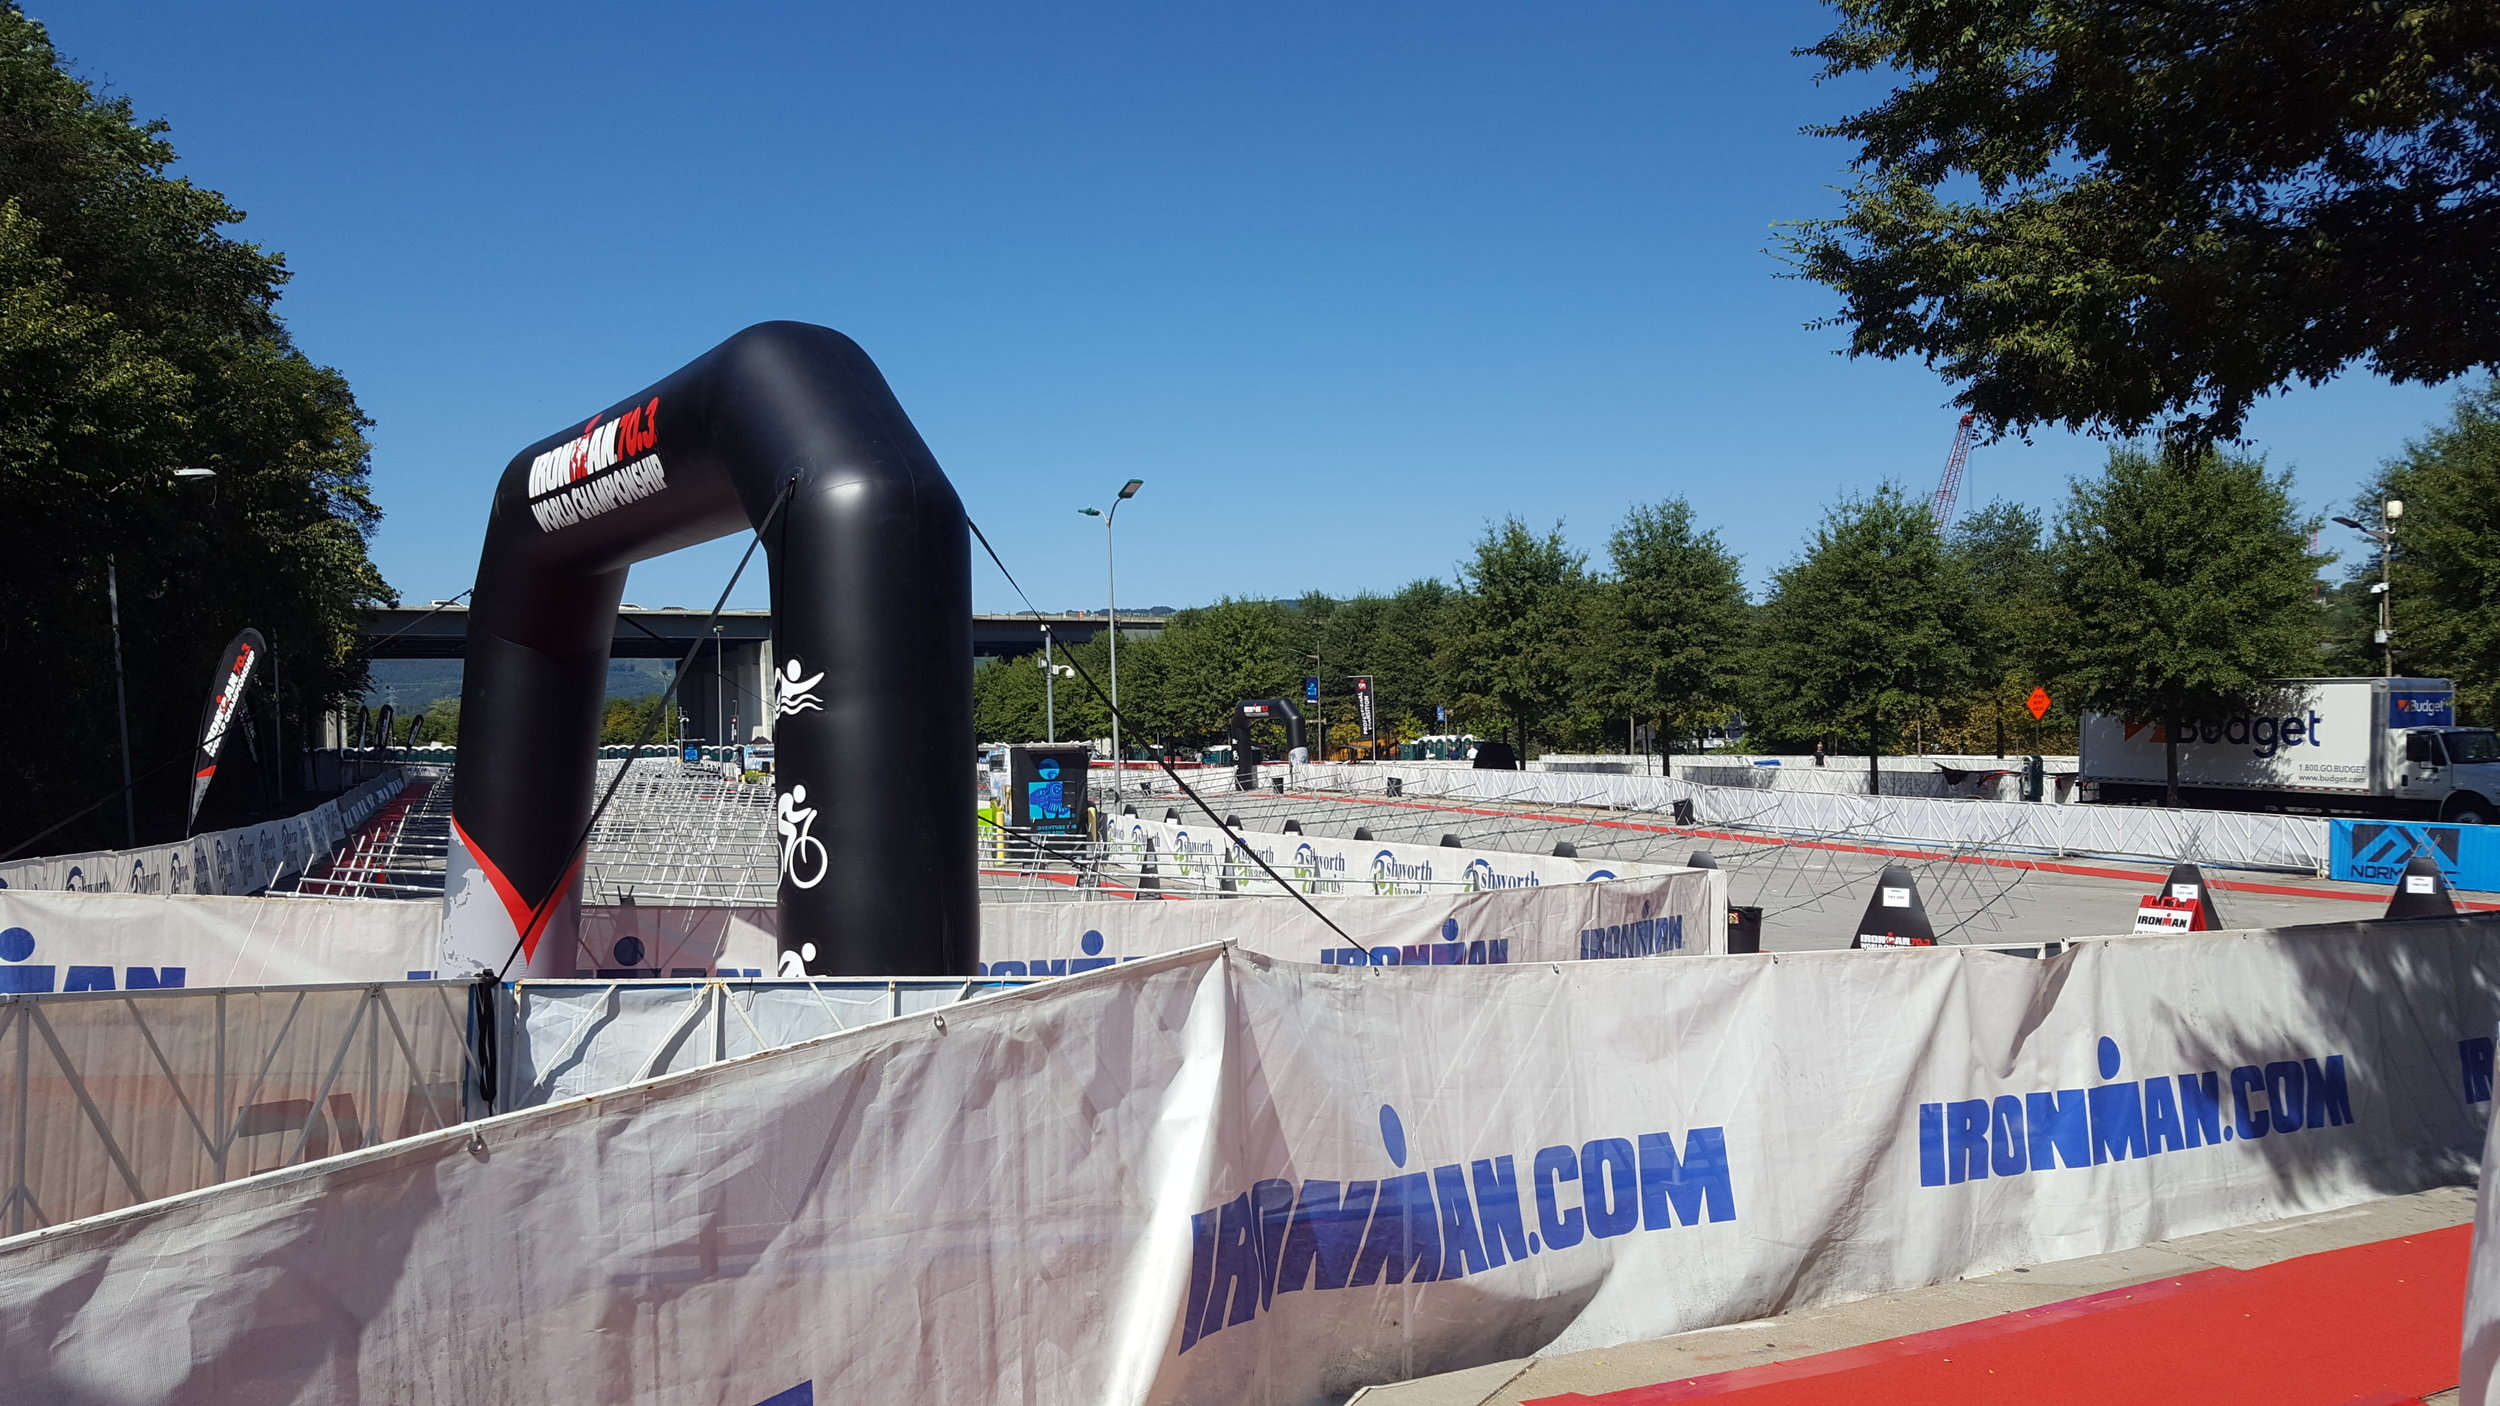 The transition area before it was full! There were two separate areas for men and women.